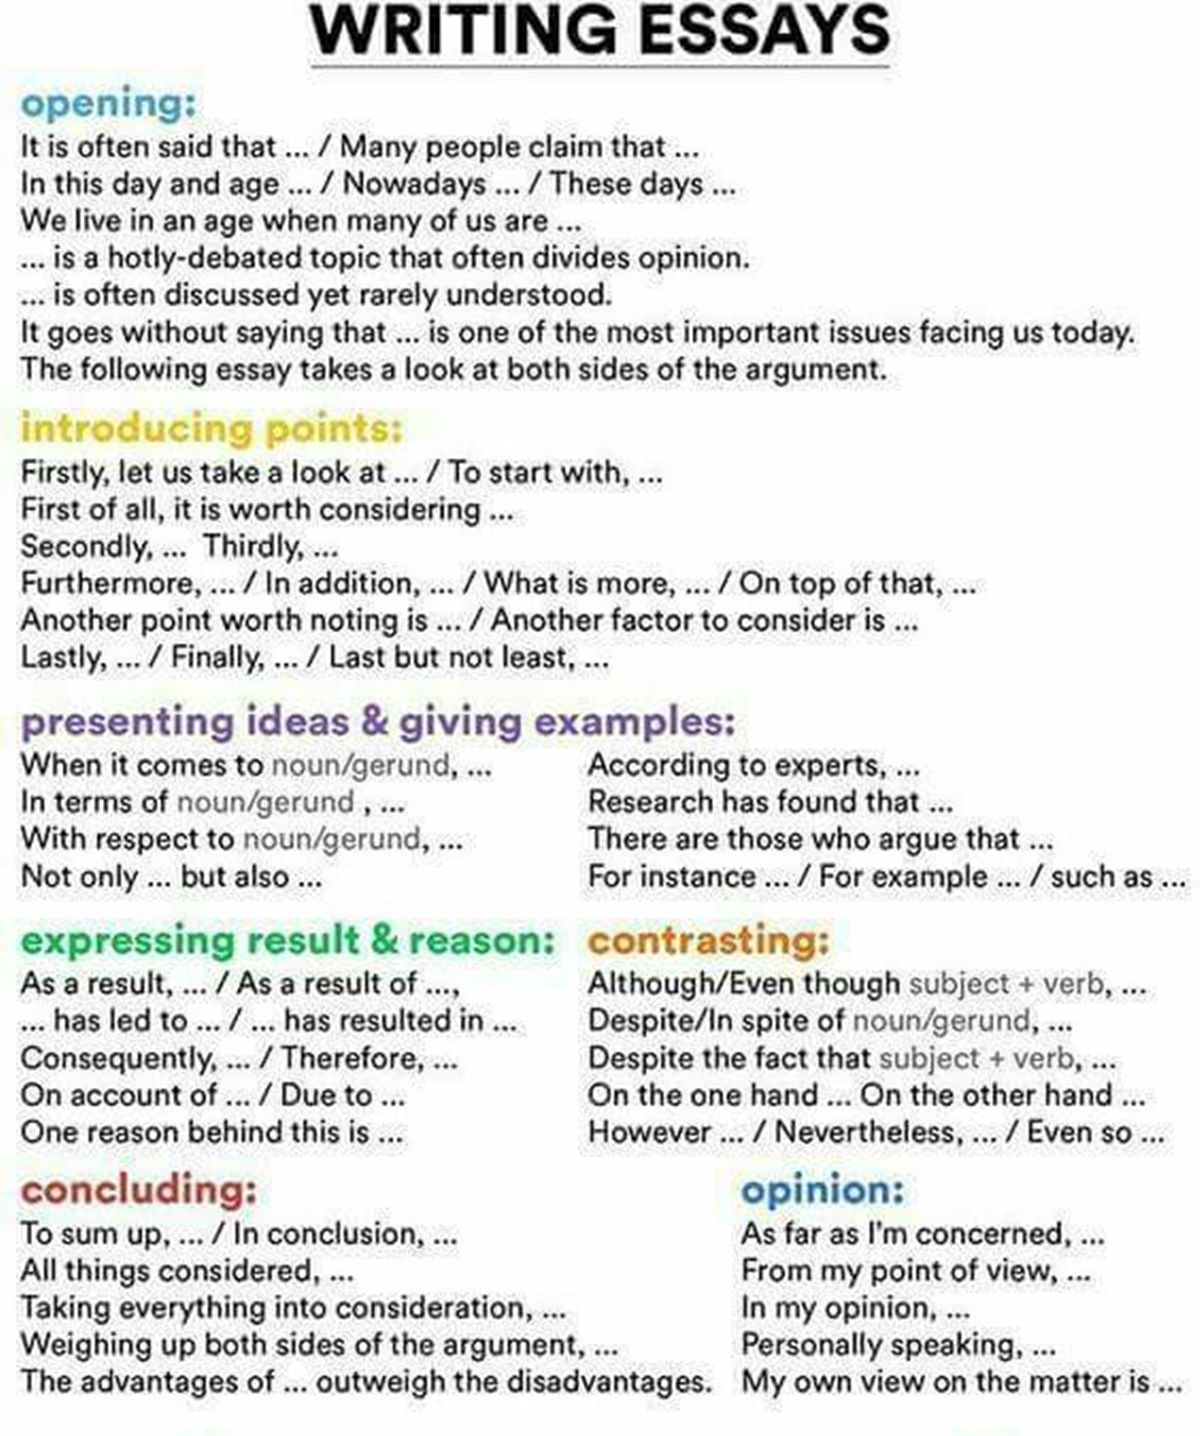 pin by chell rodica on learn english  essay writing skills english  pin by chell rodica on learn english  essay writing skills english  writing ielts writing research essay papers also high school dropouts essay hamlet essay thesis